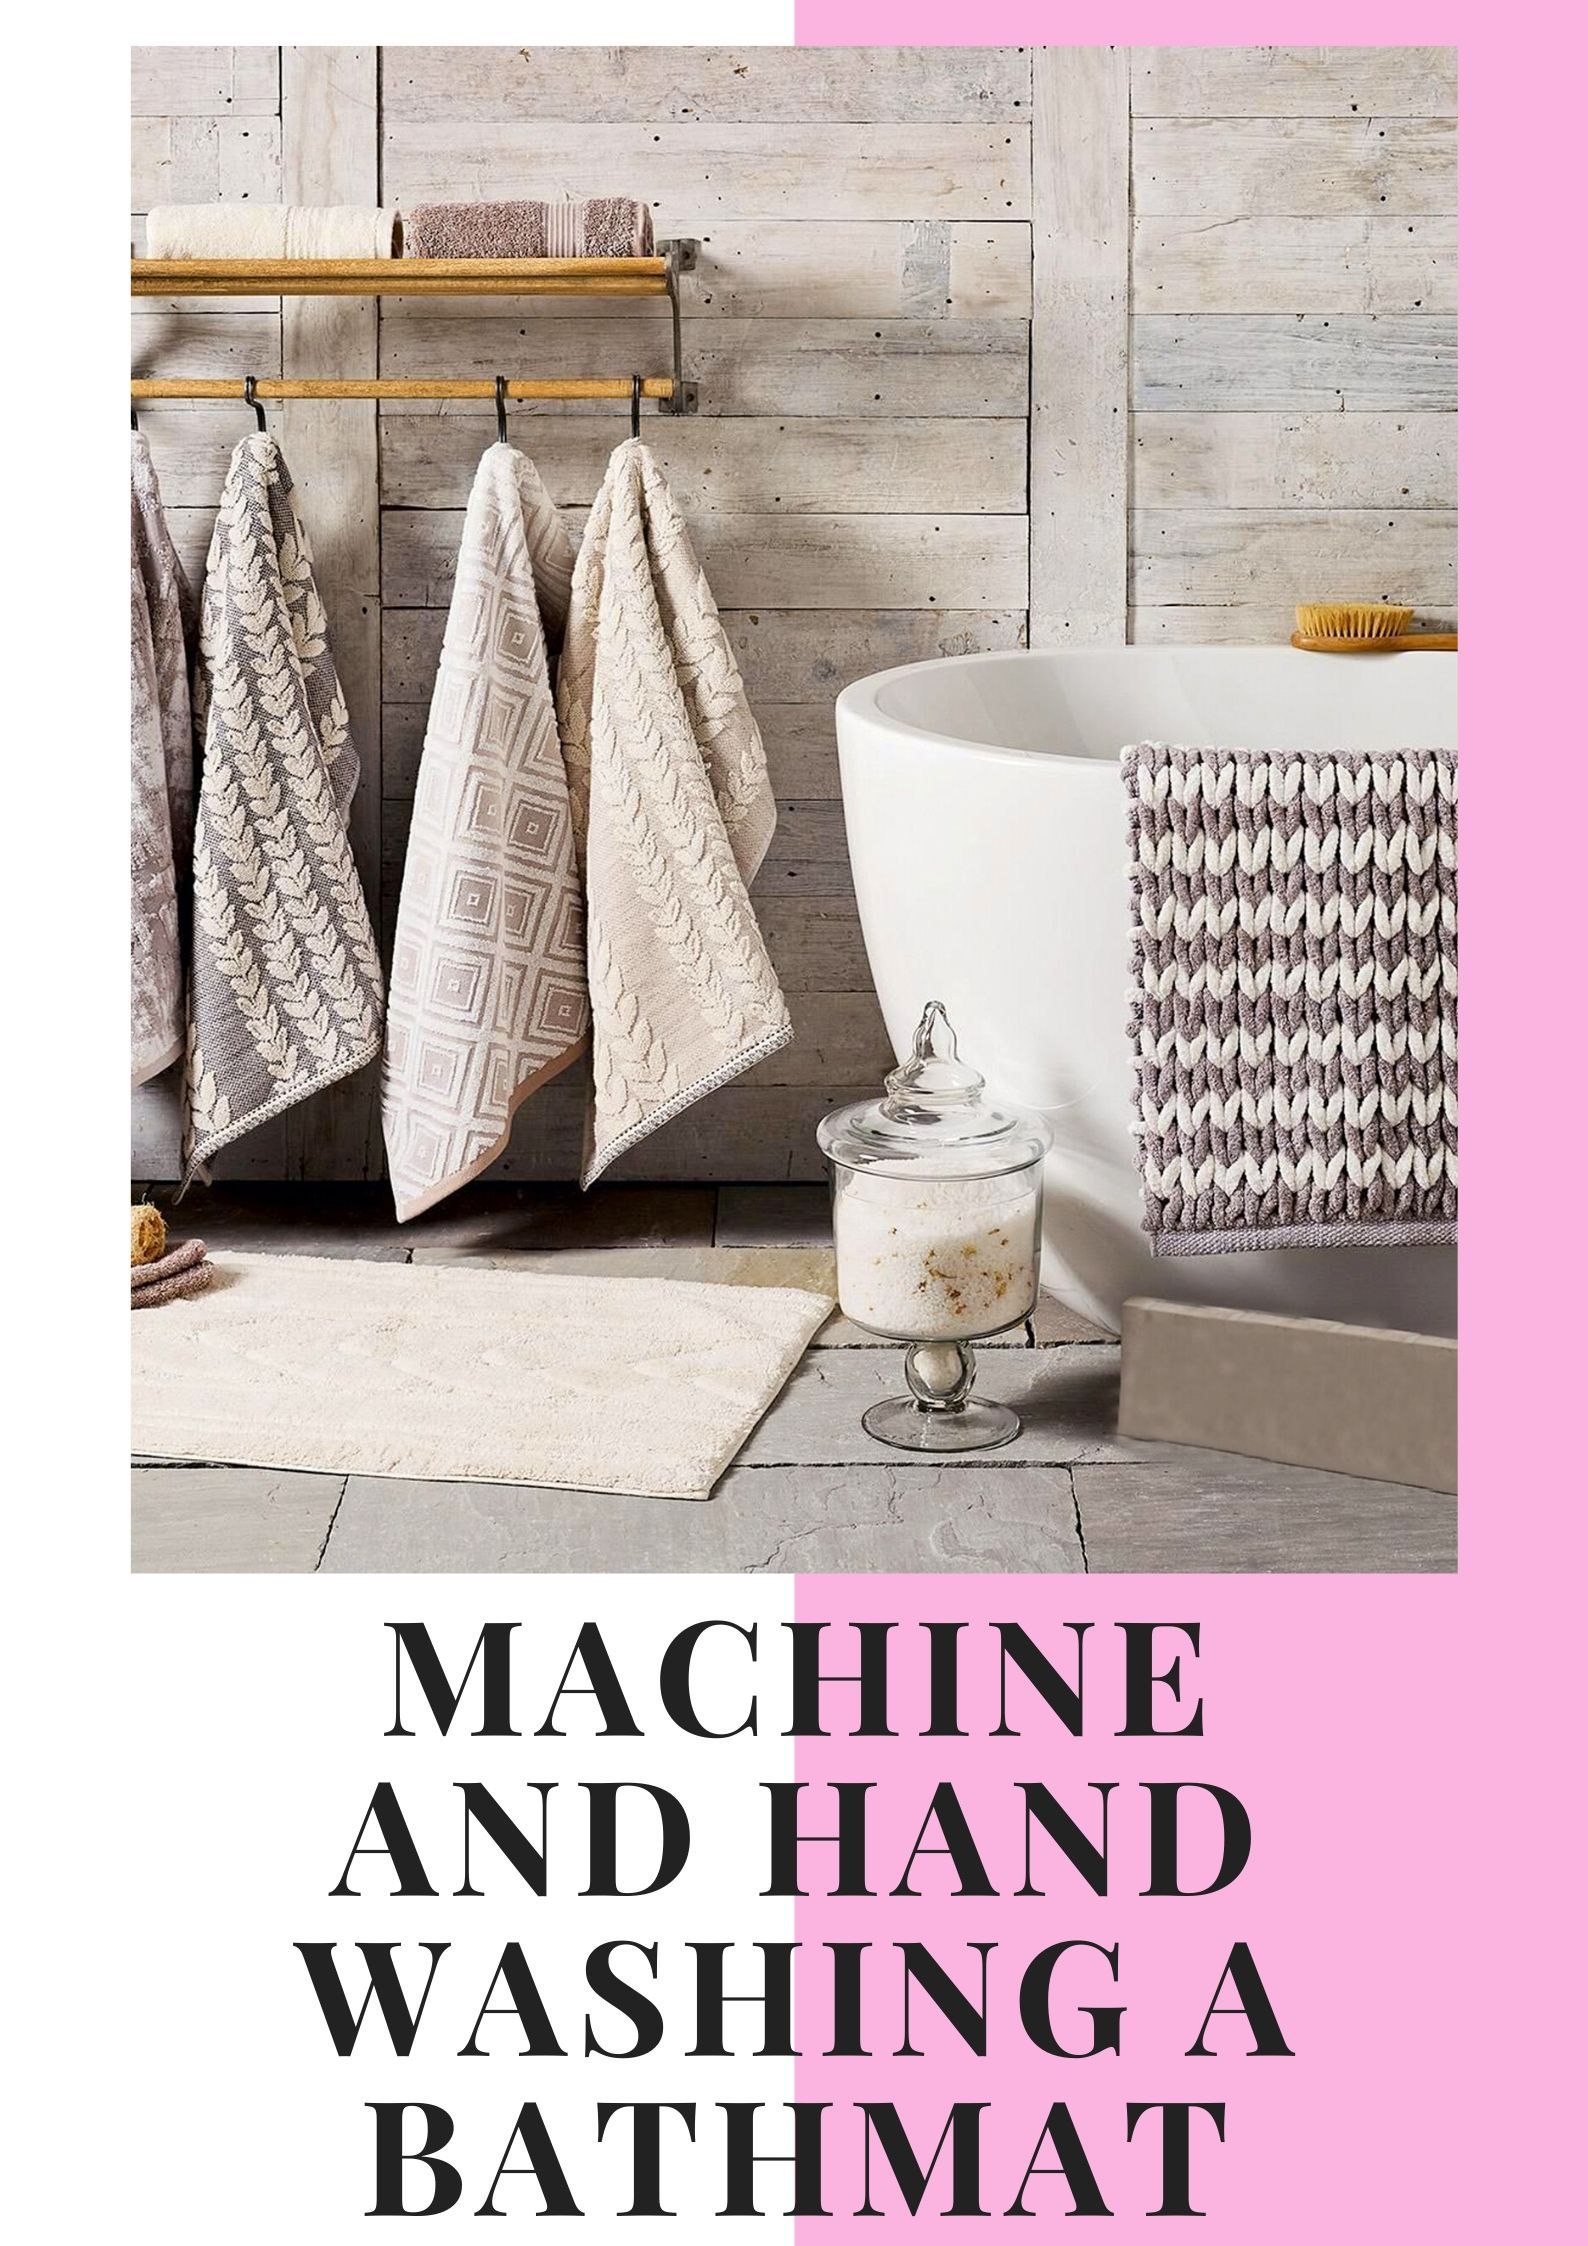 The Bath Mat Can Be Washed In Two Ways By Hand Or Washing Machine